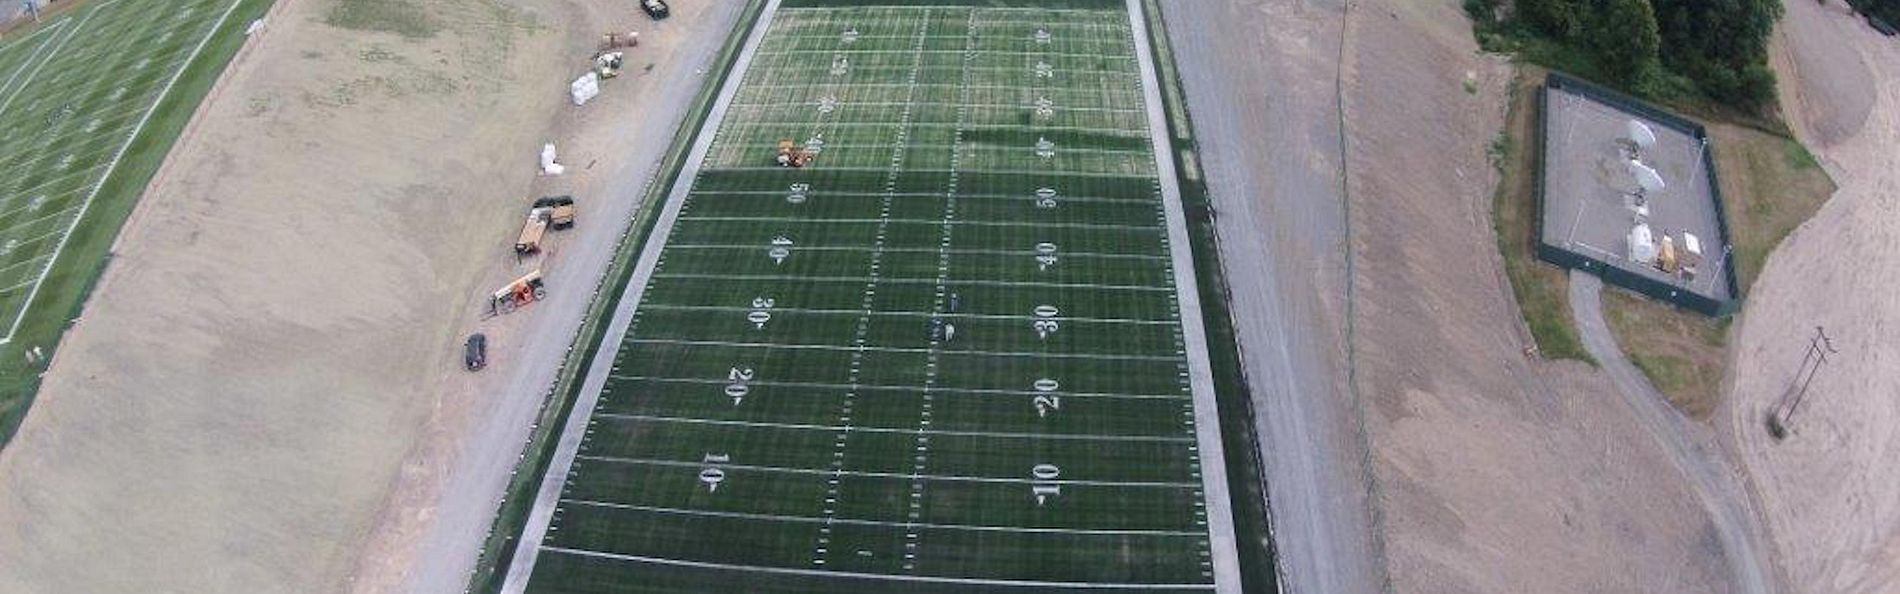 Football field for the New Orleans Saints that meets all NFL requirements and regulations